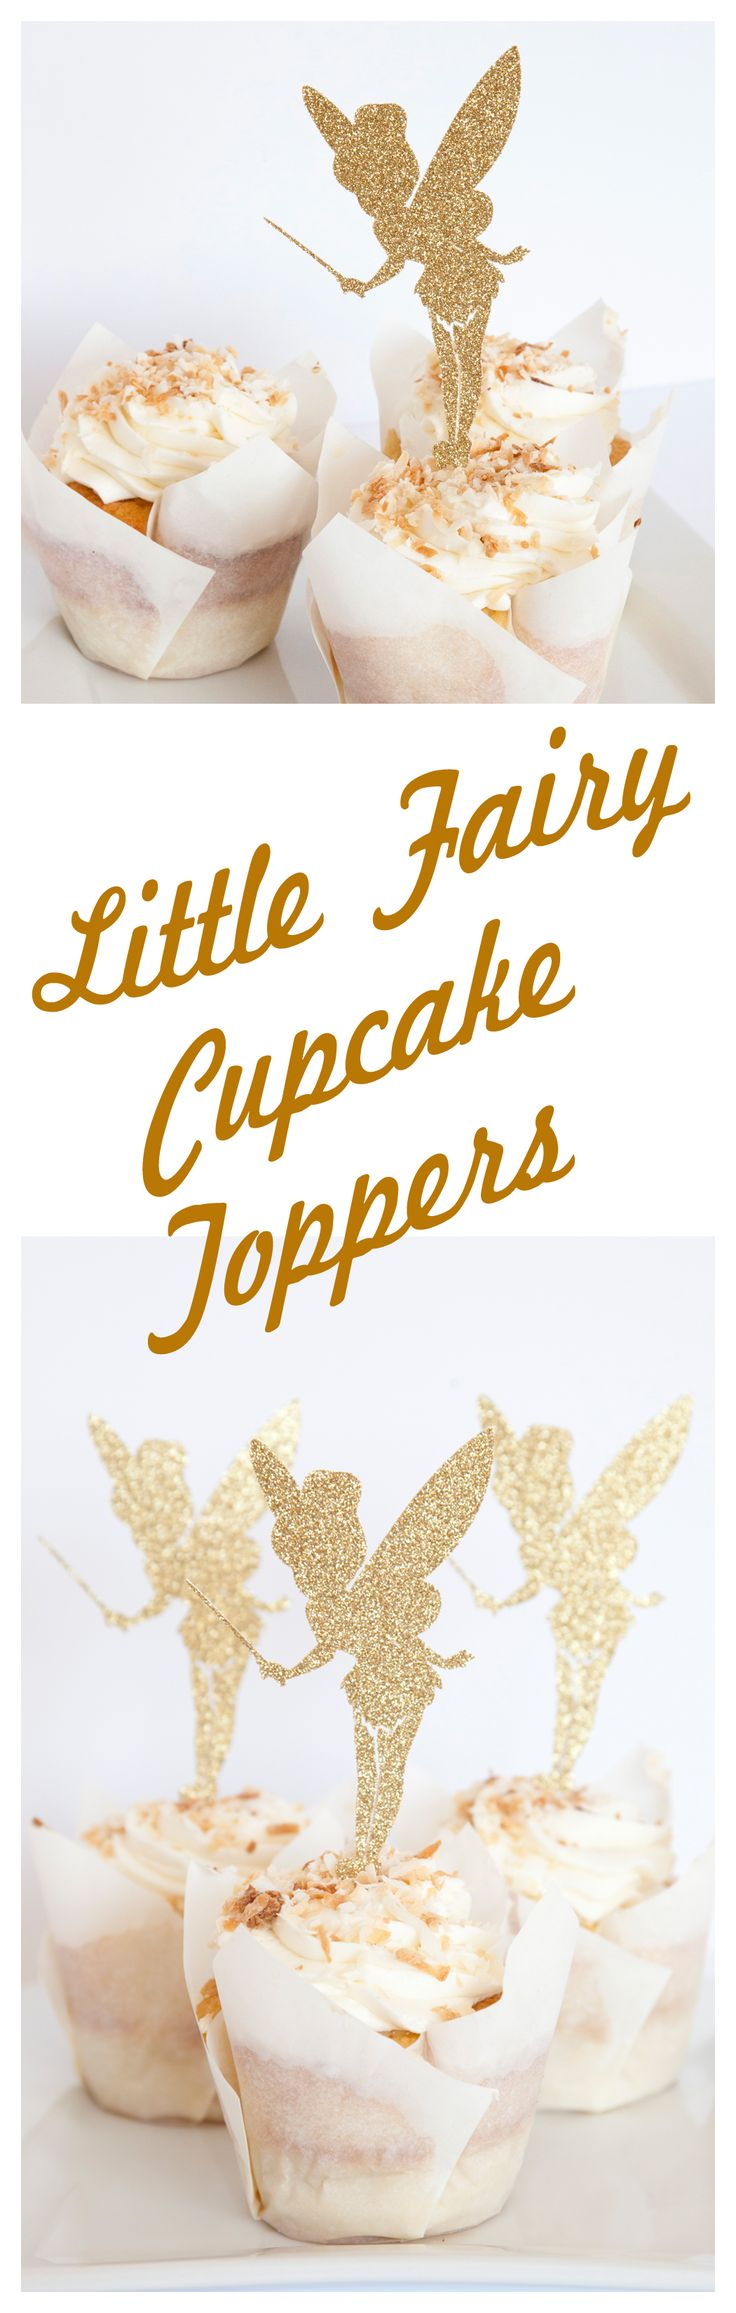 Fairy Cupcake Toppers from Melinda Bryant Photo on Etsy. These are perfect for your little girl's fairy or pixie themed birthday party.  Click on the photo to shop for these and many other glitter cupcake toppers for any occasion.  // ideas, supplies, decorations, tinker bell, products, fun, decor, themed #melindabryantphoto #fairybirthdayparty #partyplanning